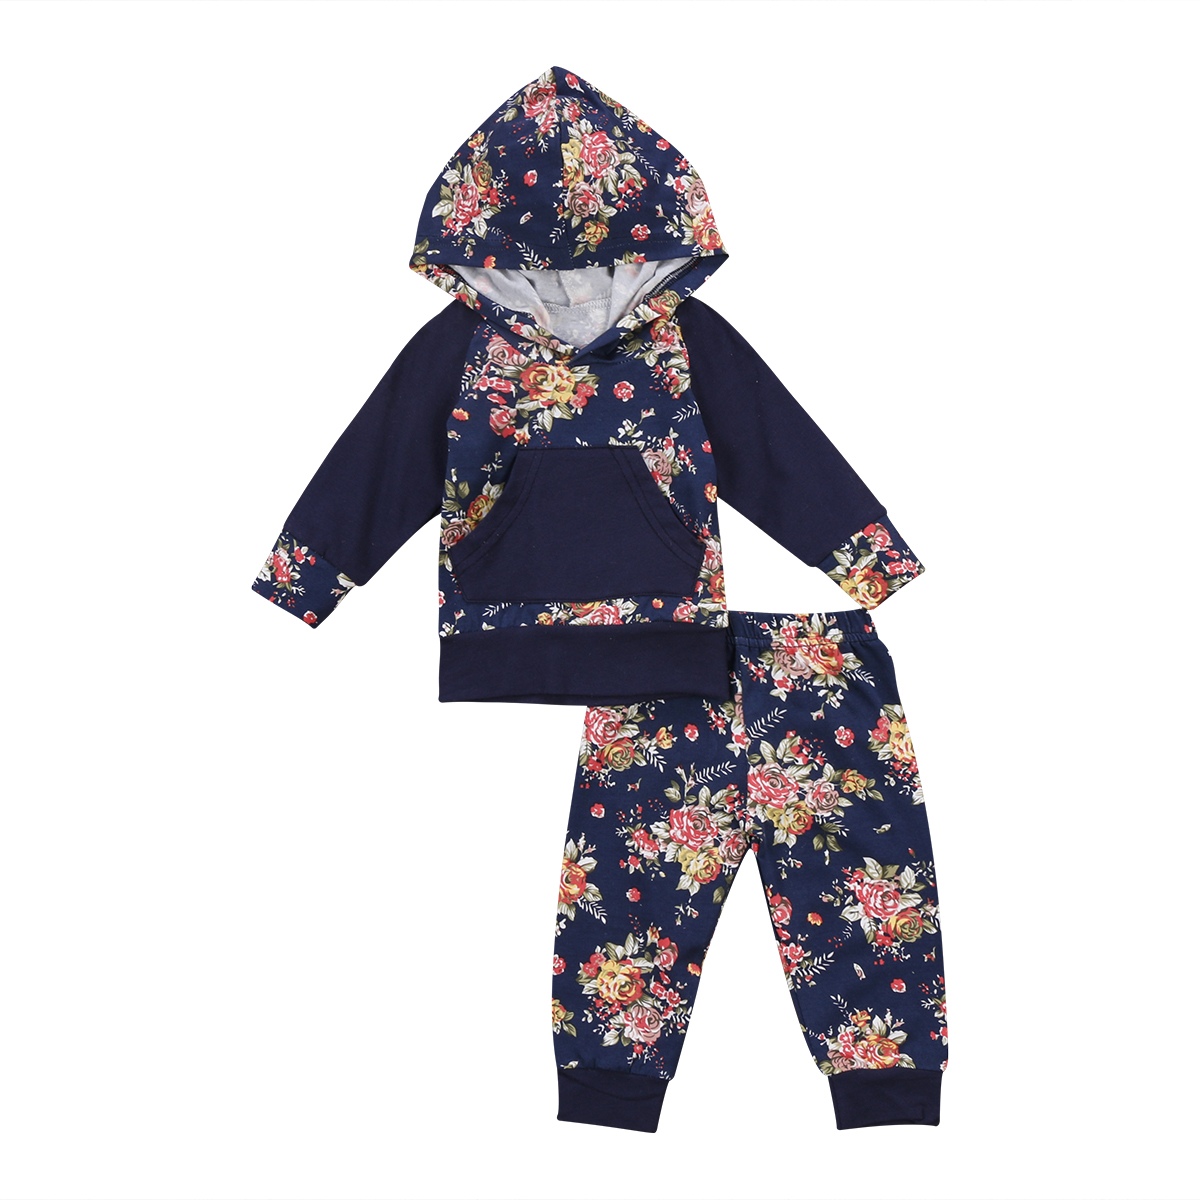 2Pcs Autumn Winter Newborn Toddler Infant Baby Girls Boys Floral Hoodies Tops Sweatshirt Legging Pants Outfits Set Clothes